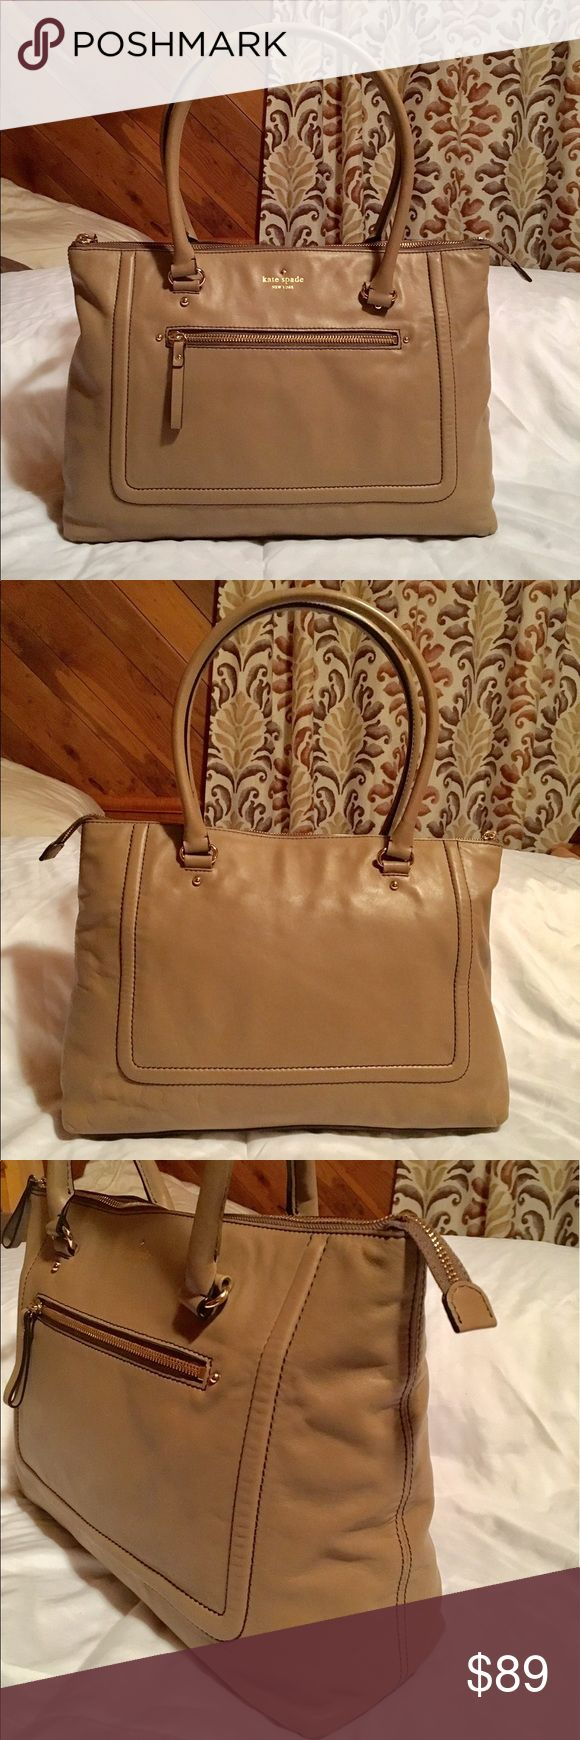 ♠️Kate Spade♠️Mott Street Judd Medium Tote ♠️Kate Spade♠️Mott Street Judd Medium Tote  In good condition.Smooth leather with zip pocket and embossed designer logo at front.Clean exterior and interior.With defect glue inside lining close to zipper as seen in the pictures.Four feet at base.Doulble shoulder straps good condition,front zip pocket,and top zip closure.This size correspondence is recommended items to school or work.Came from a smoke free and pet free home.I'm open to negotiate…